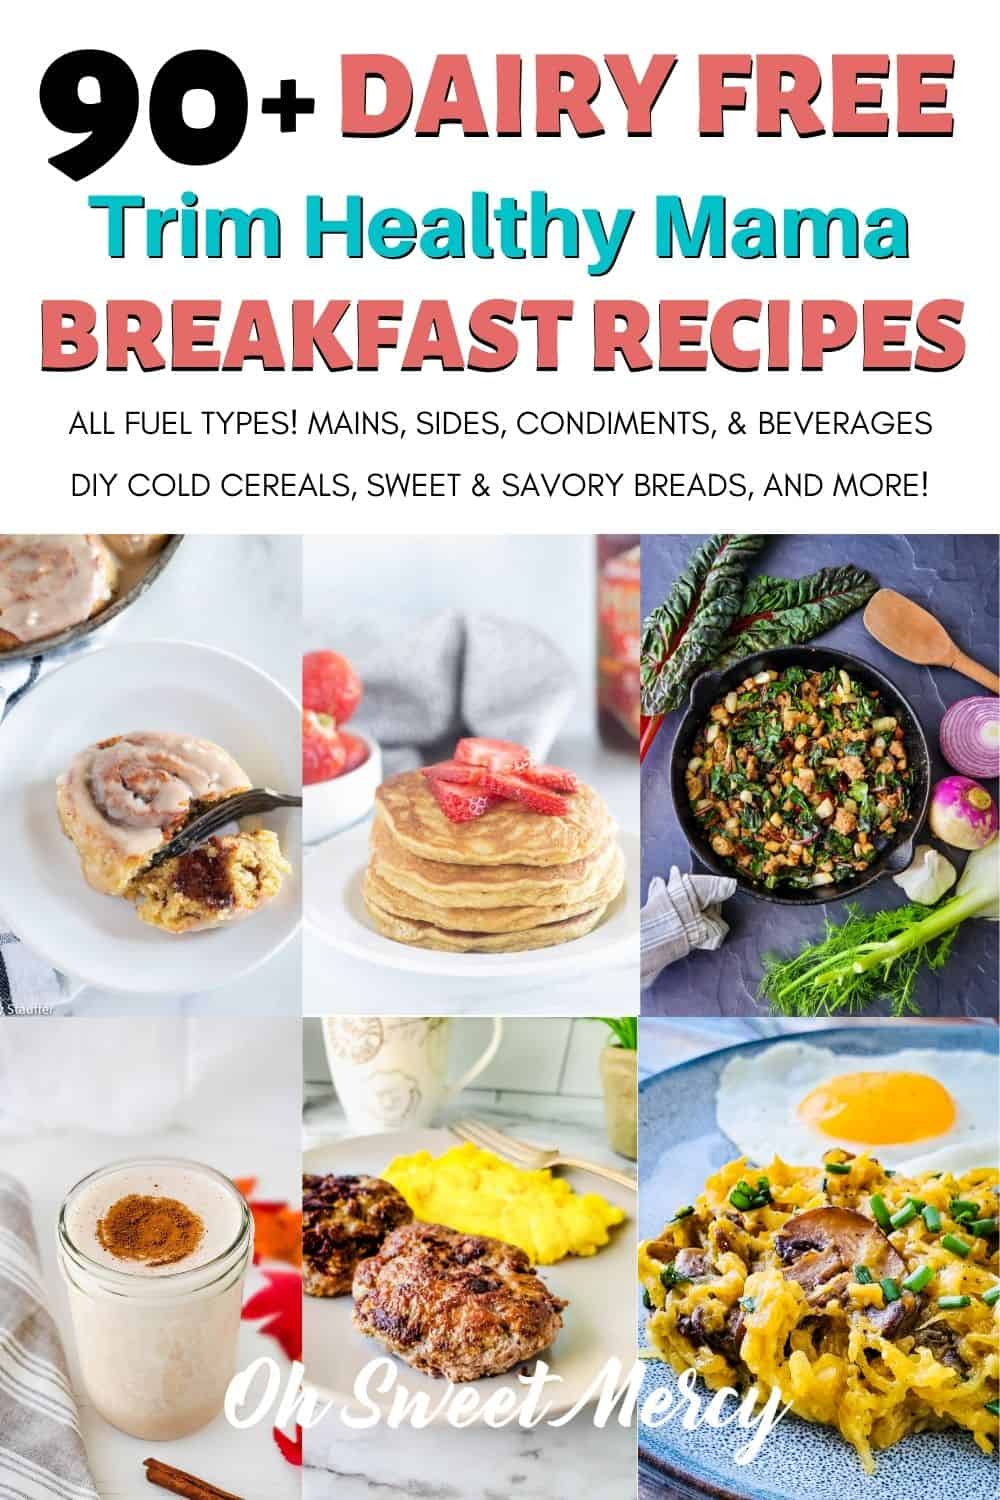 Need dairy free THM breakfast recipes? I've got over 90 tasty, healthy, and on-plan recipes for you! Hot and cold mains, sides, baked goods, condiments, beverages and more! You'll never even miss the dairy in these delicious recipes! #thm #dairyfree #breakfast #recipes #lowcarb #lowfat #healthycarbs @ohsweetmercy